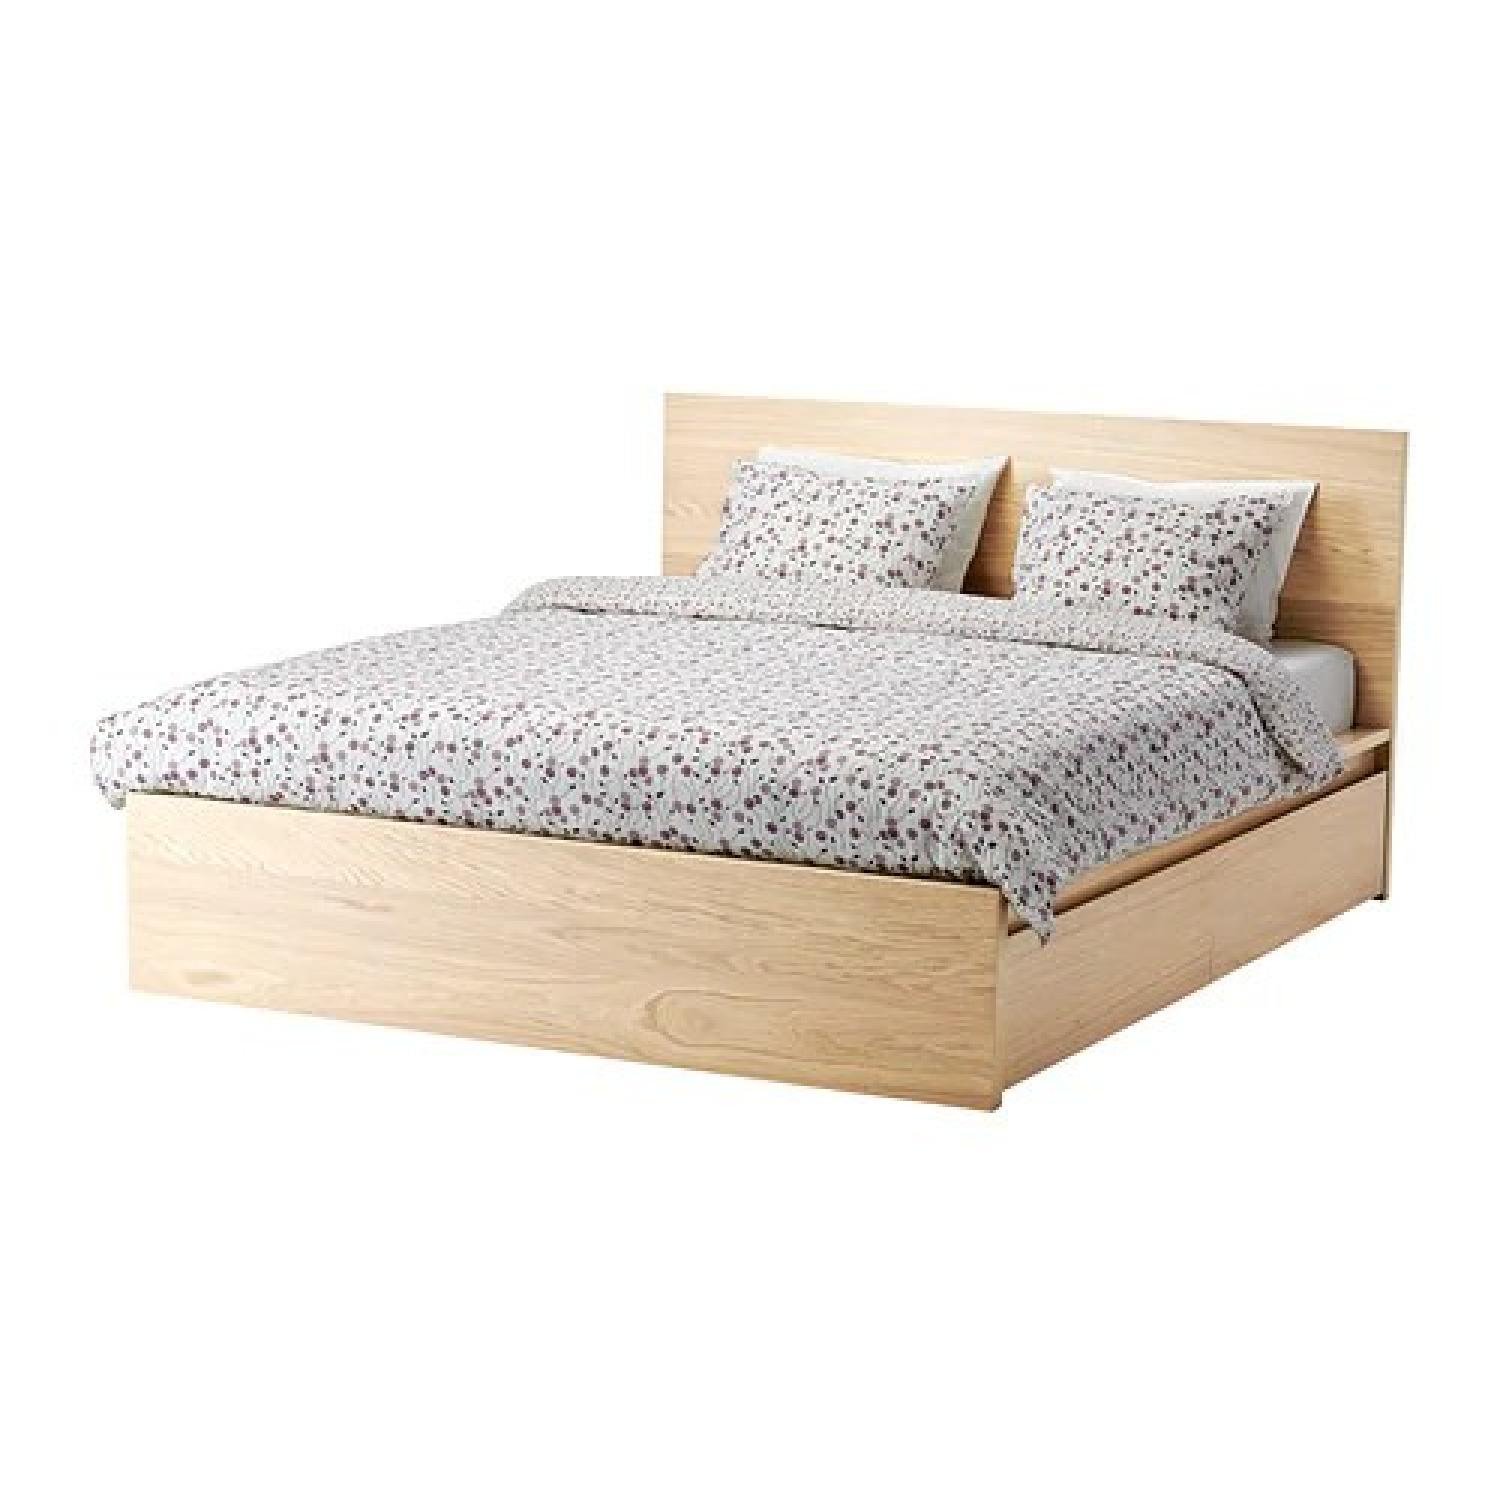 Ikea Queen Bed Frame w/ 4 Storage Drawers